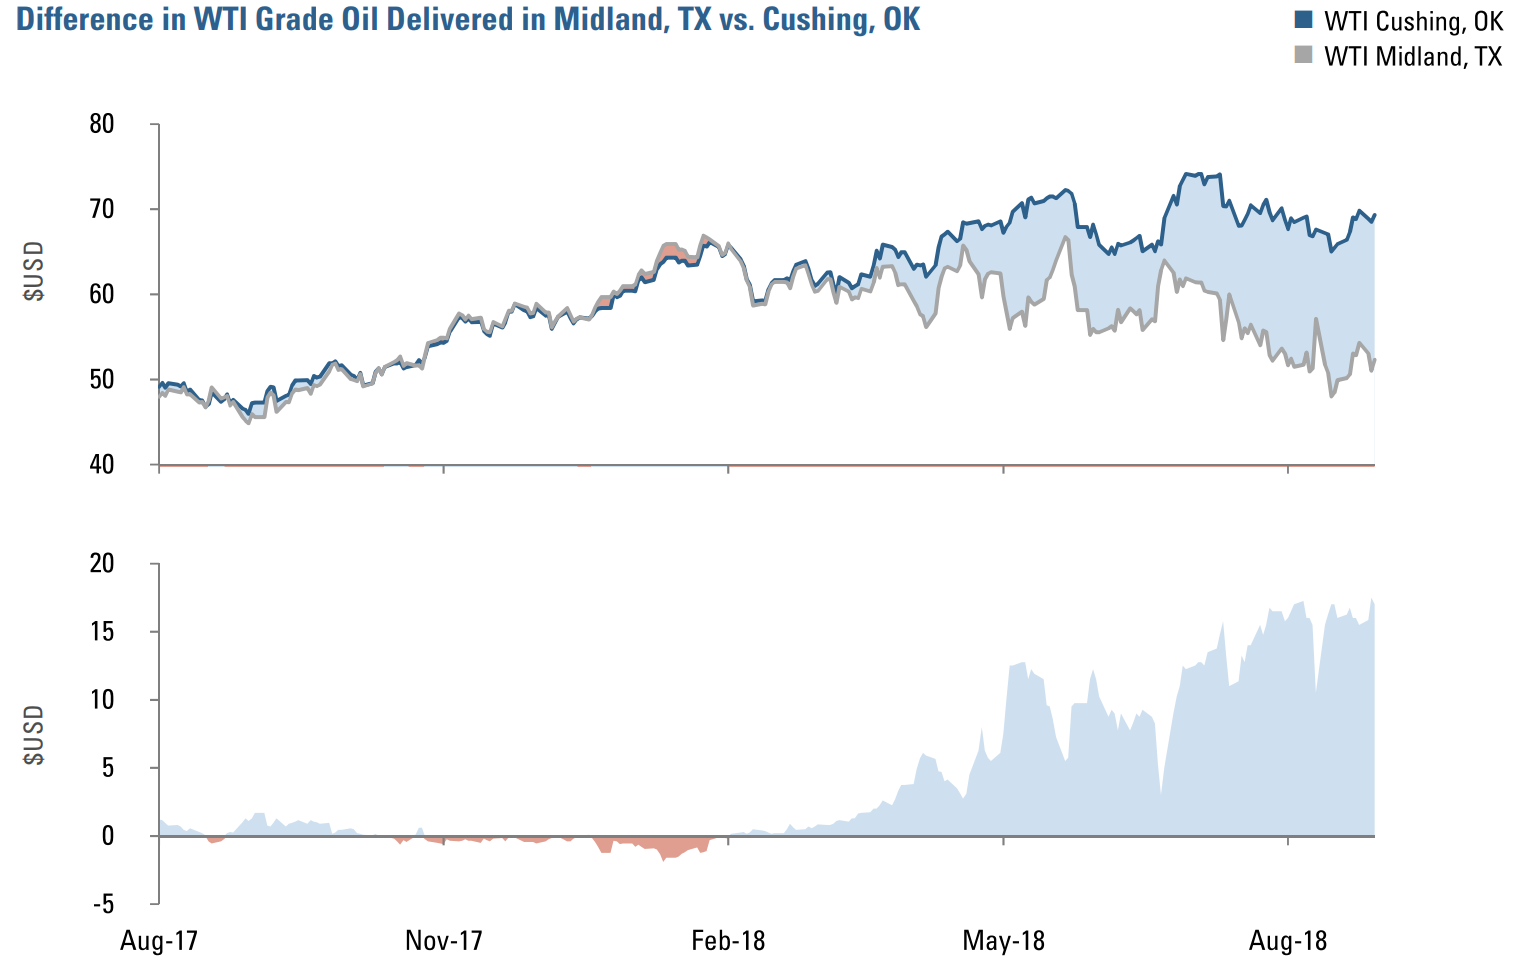 DIFFERENCE IN PRICING FOR WEST TEXAS INTERMEDIATE GRADE OIL